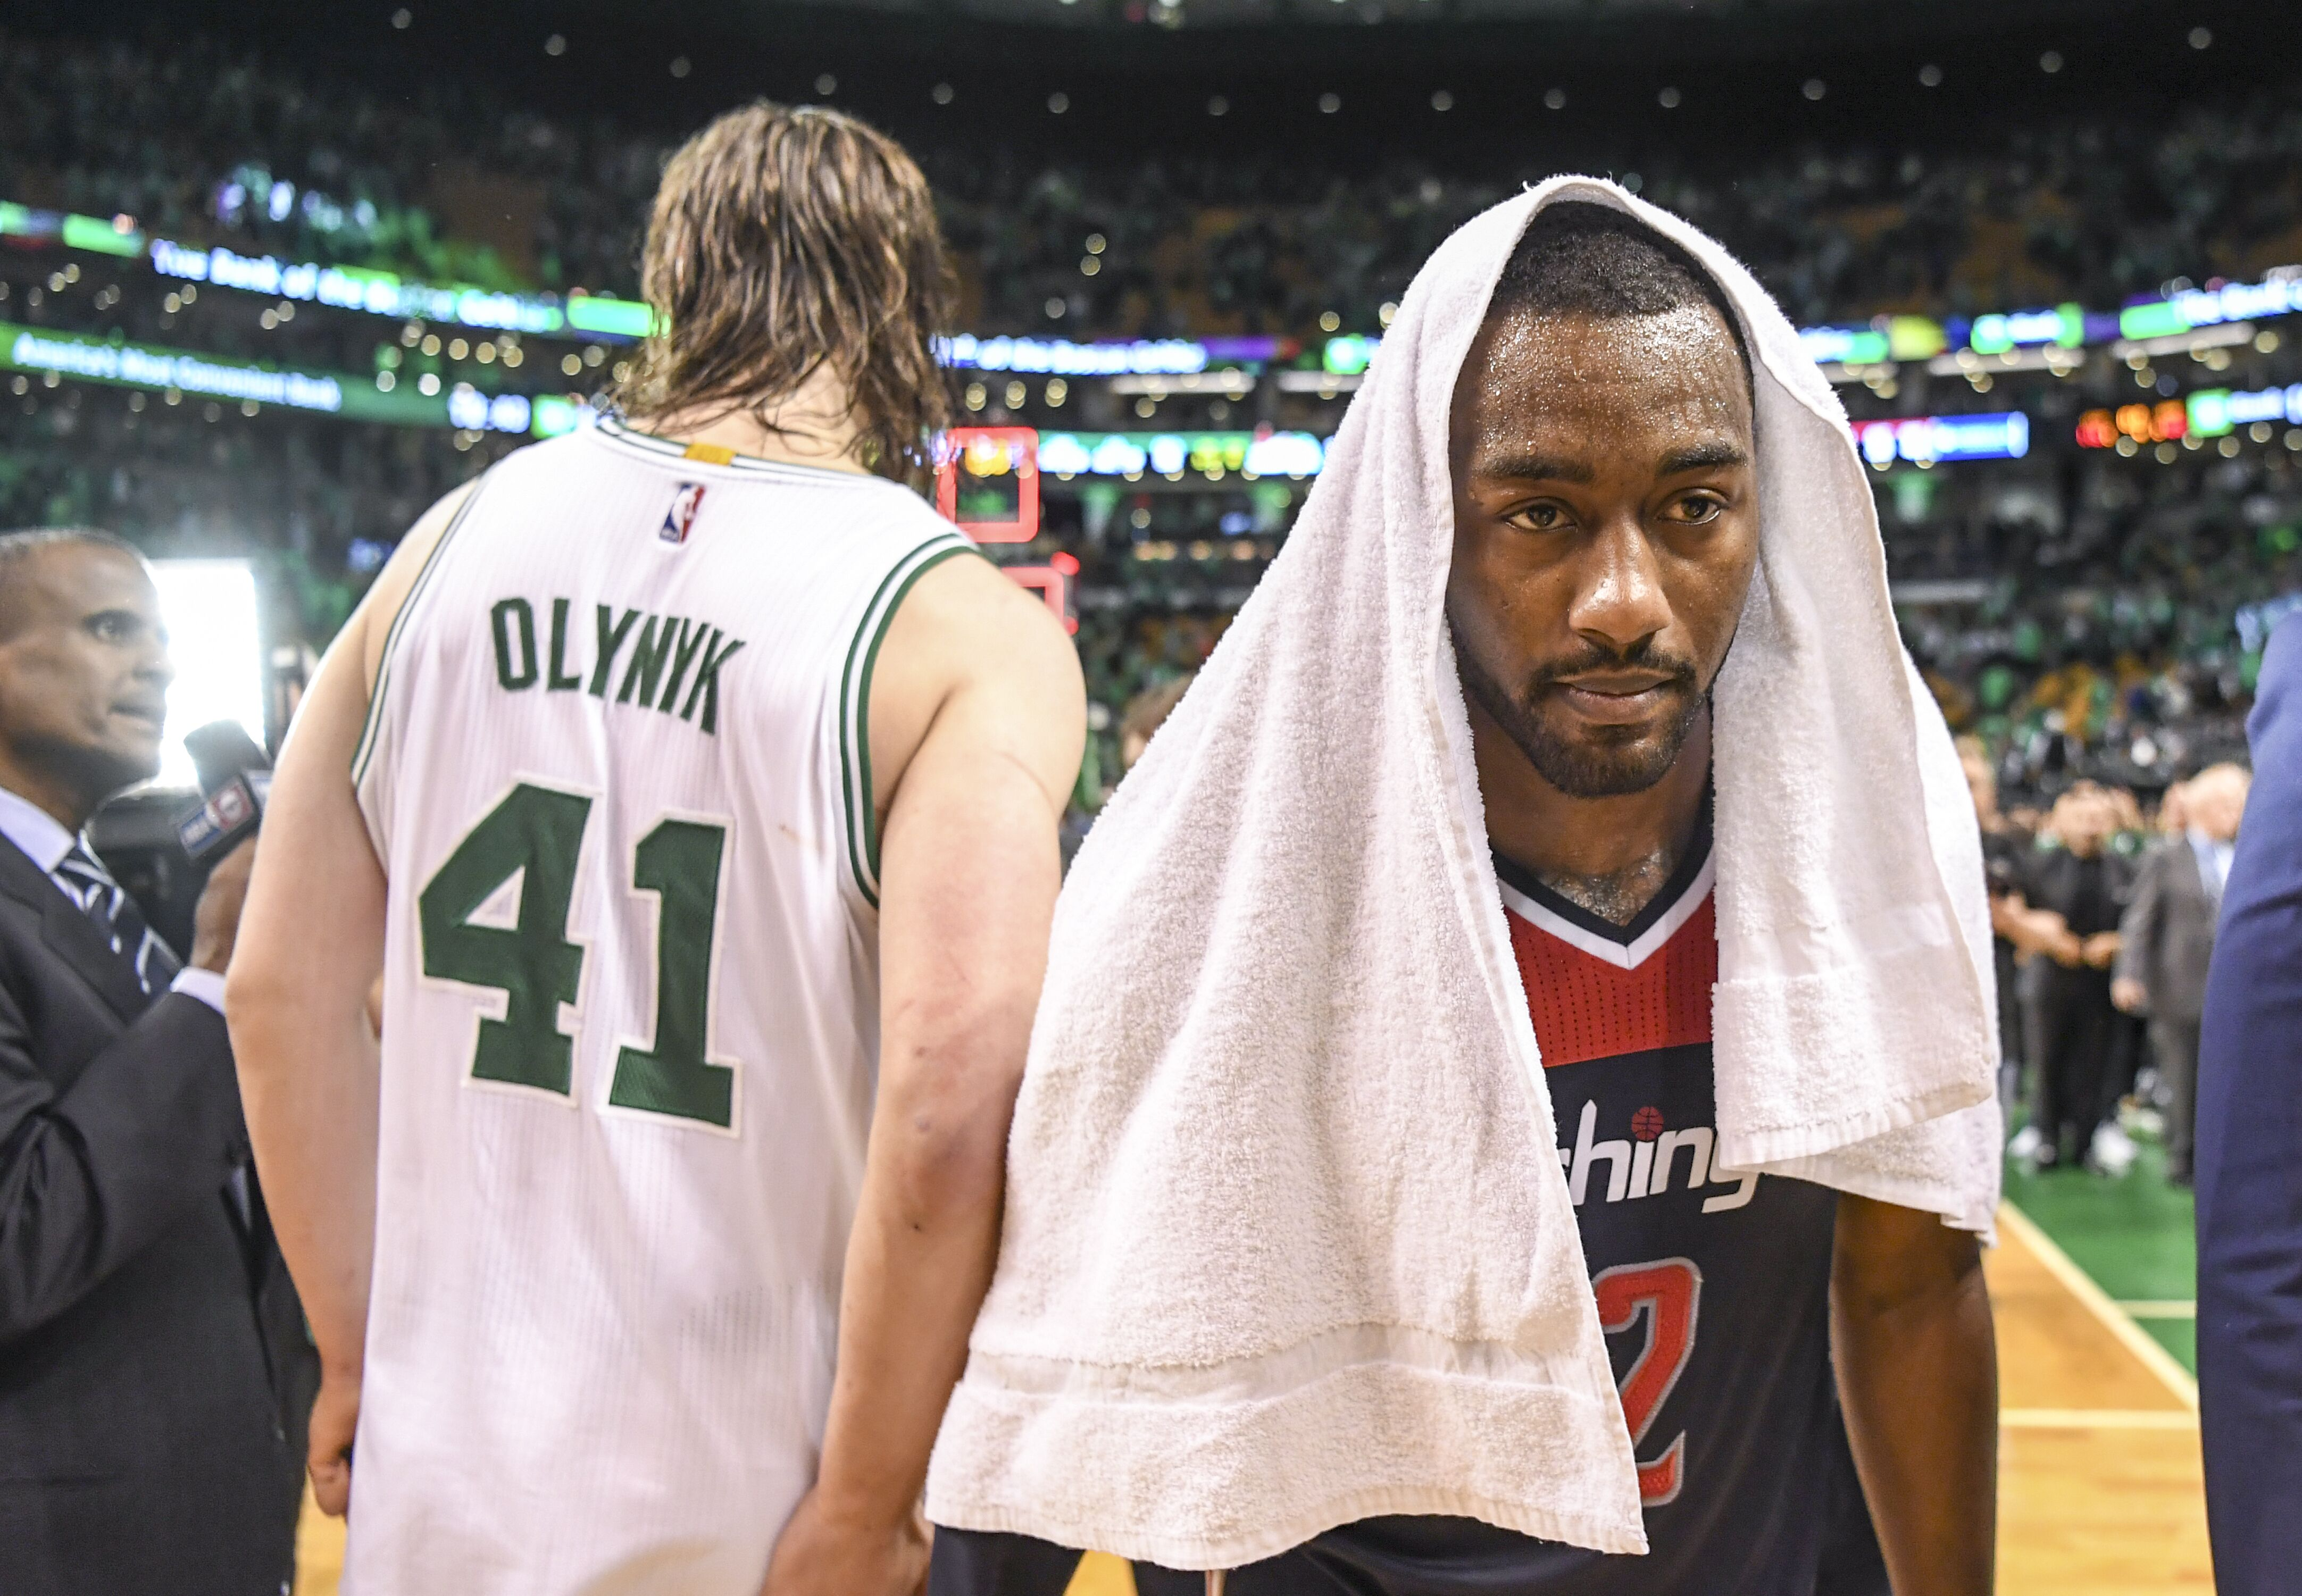 683584050-eastern-conference-semifinals-game-7-washington-wizards-at-boston-celtics.jpg